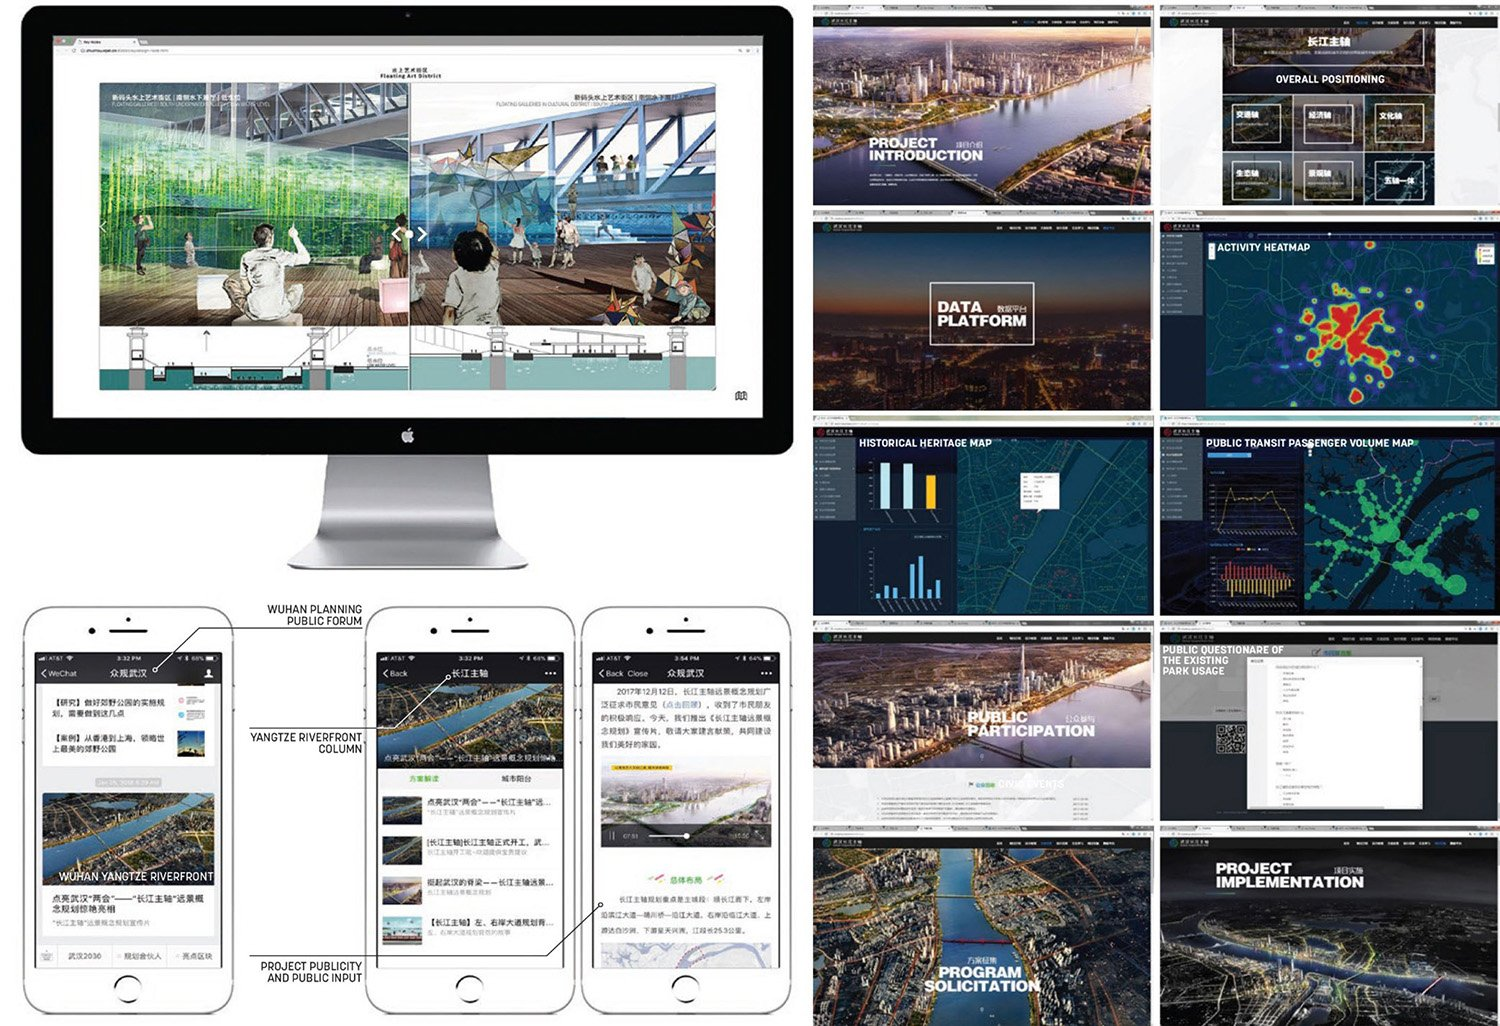 INNOVATIVE TOOLS FOR INCREASING ENGAGEMENT: During the design process, a custom-built website kept the public informed on the park's design progress and solicited additional input from over 65,000 citizens SASAKI}